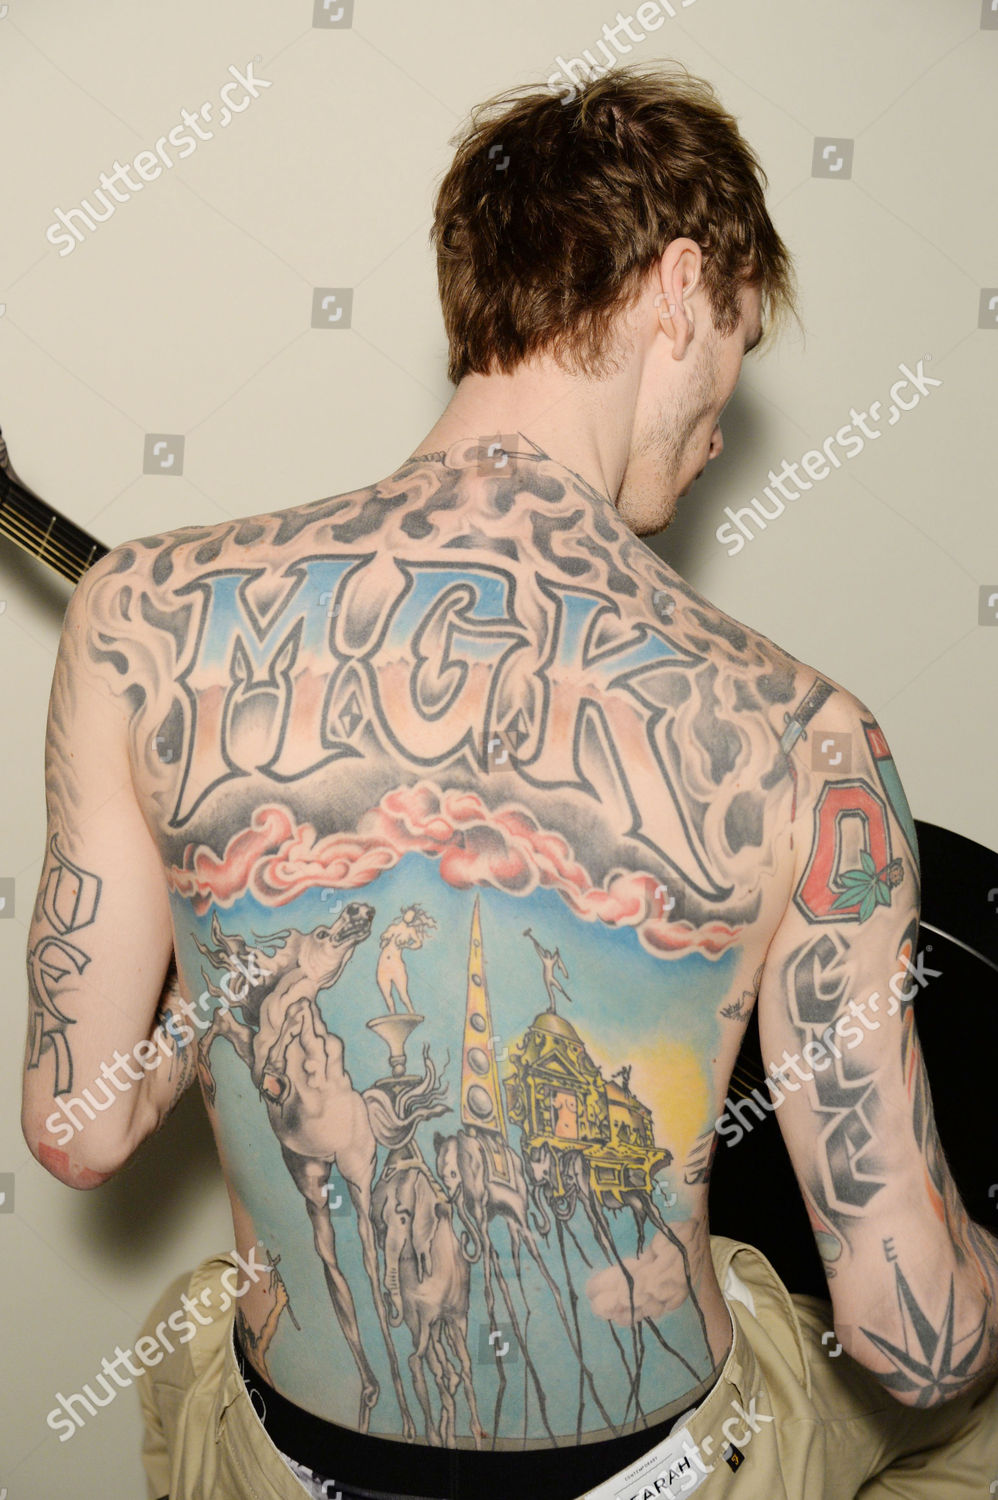 Machine Gun Kelly Richard Young Gallery Editorial Stock Photo